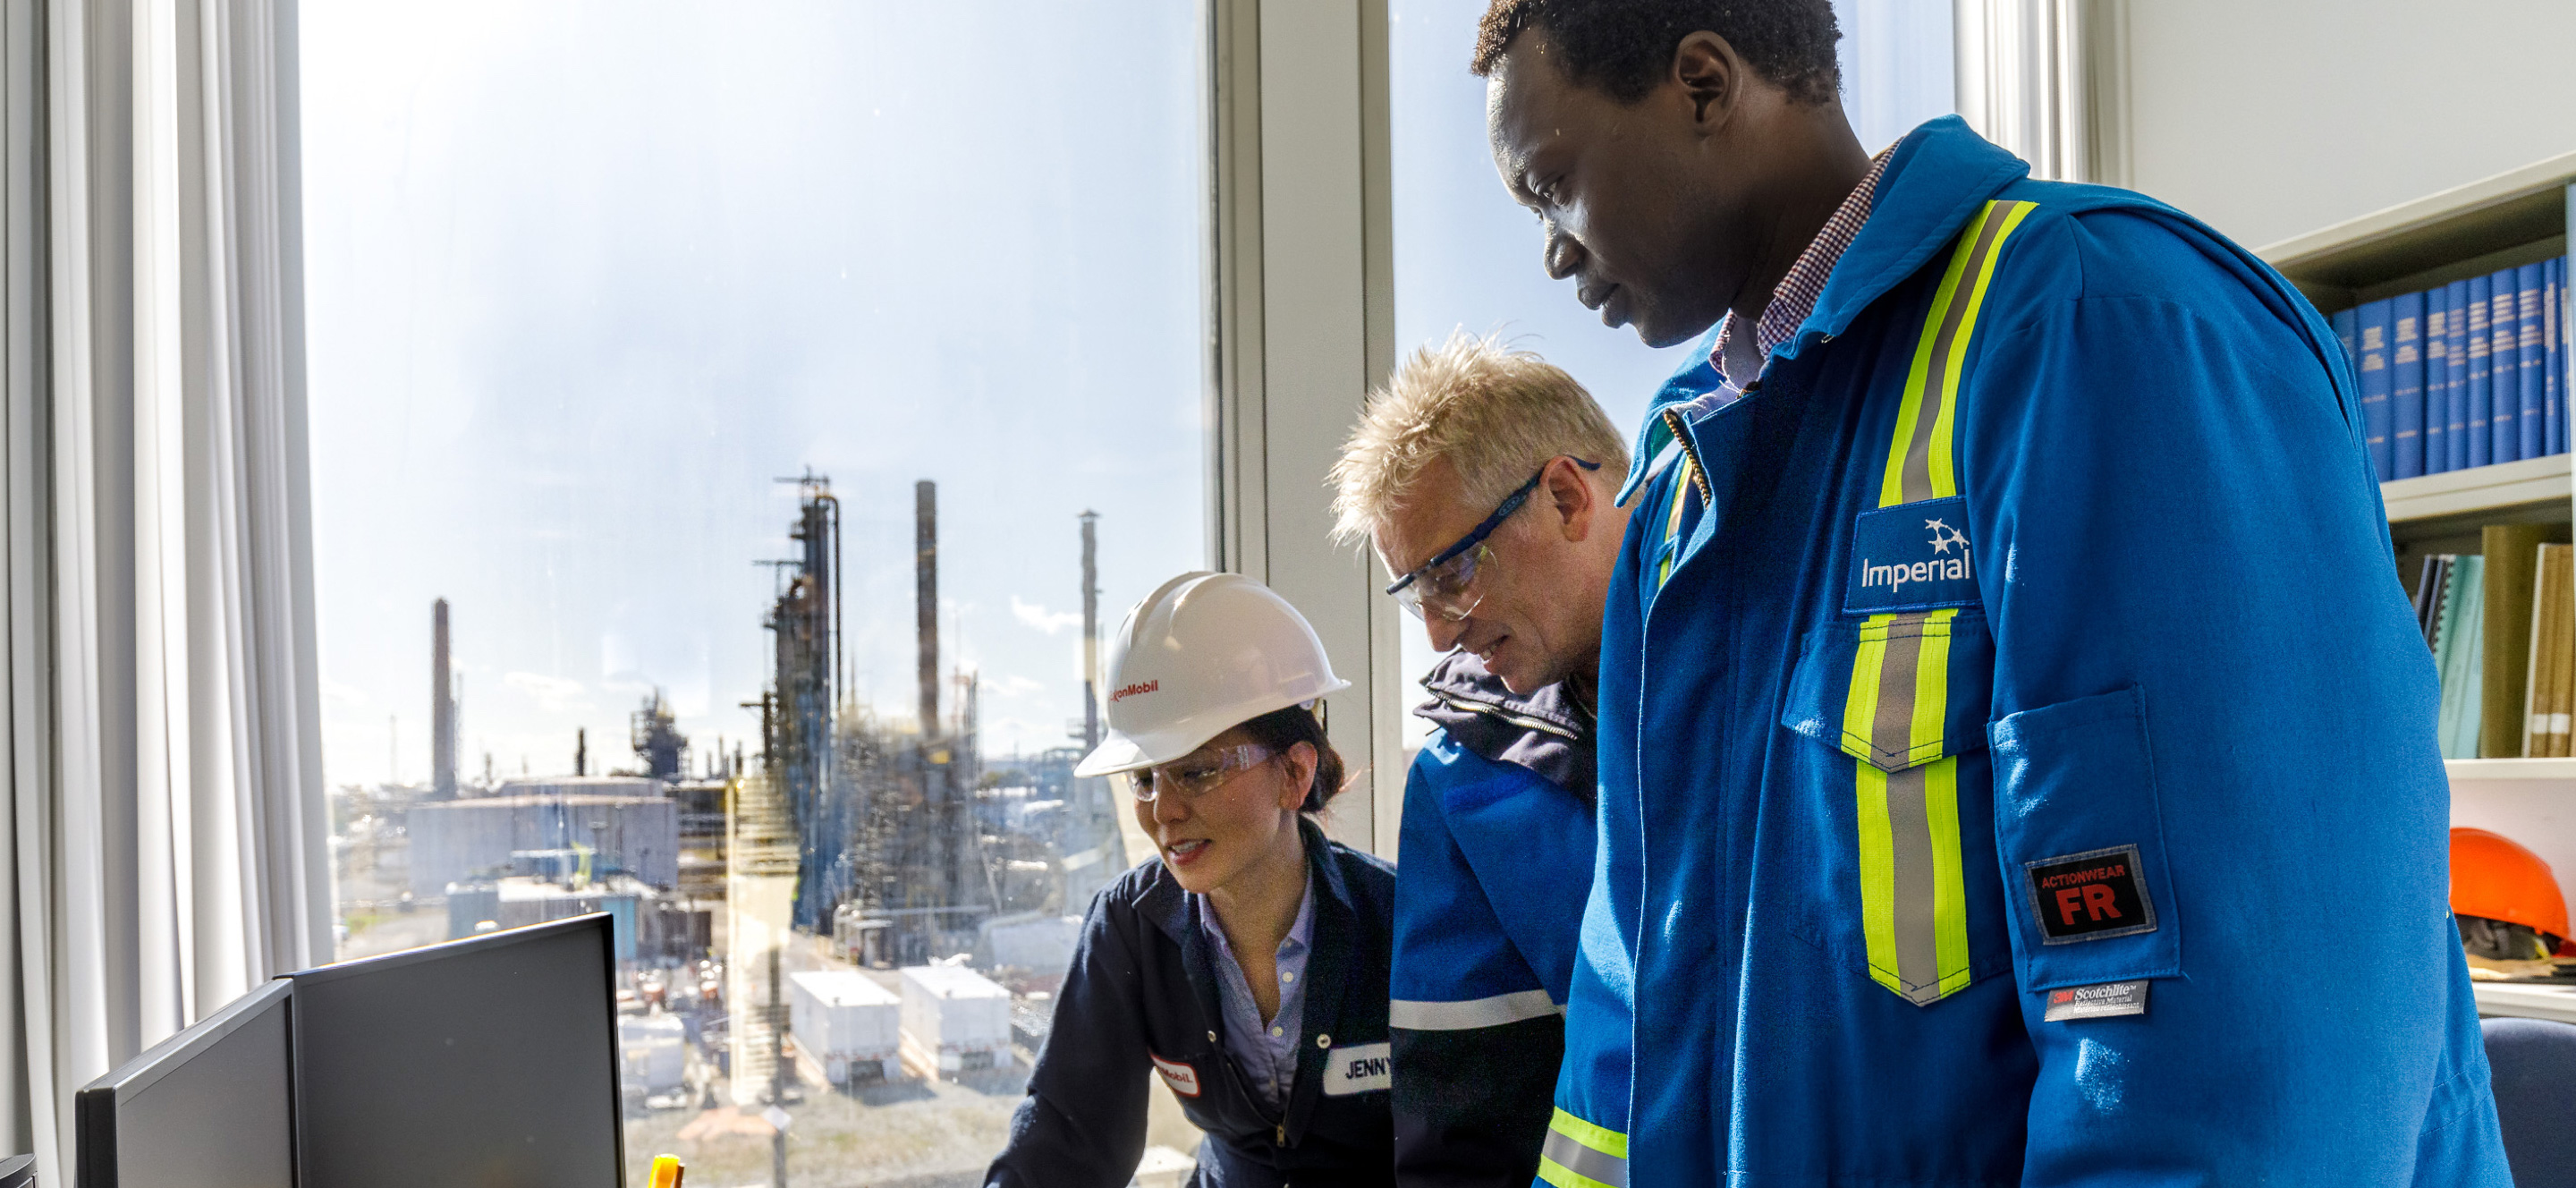 Jenny Seagraves and her team and partners at BASF. ExxonMobil employee.